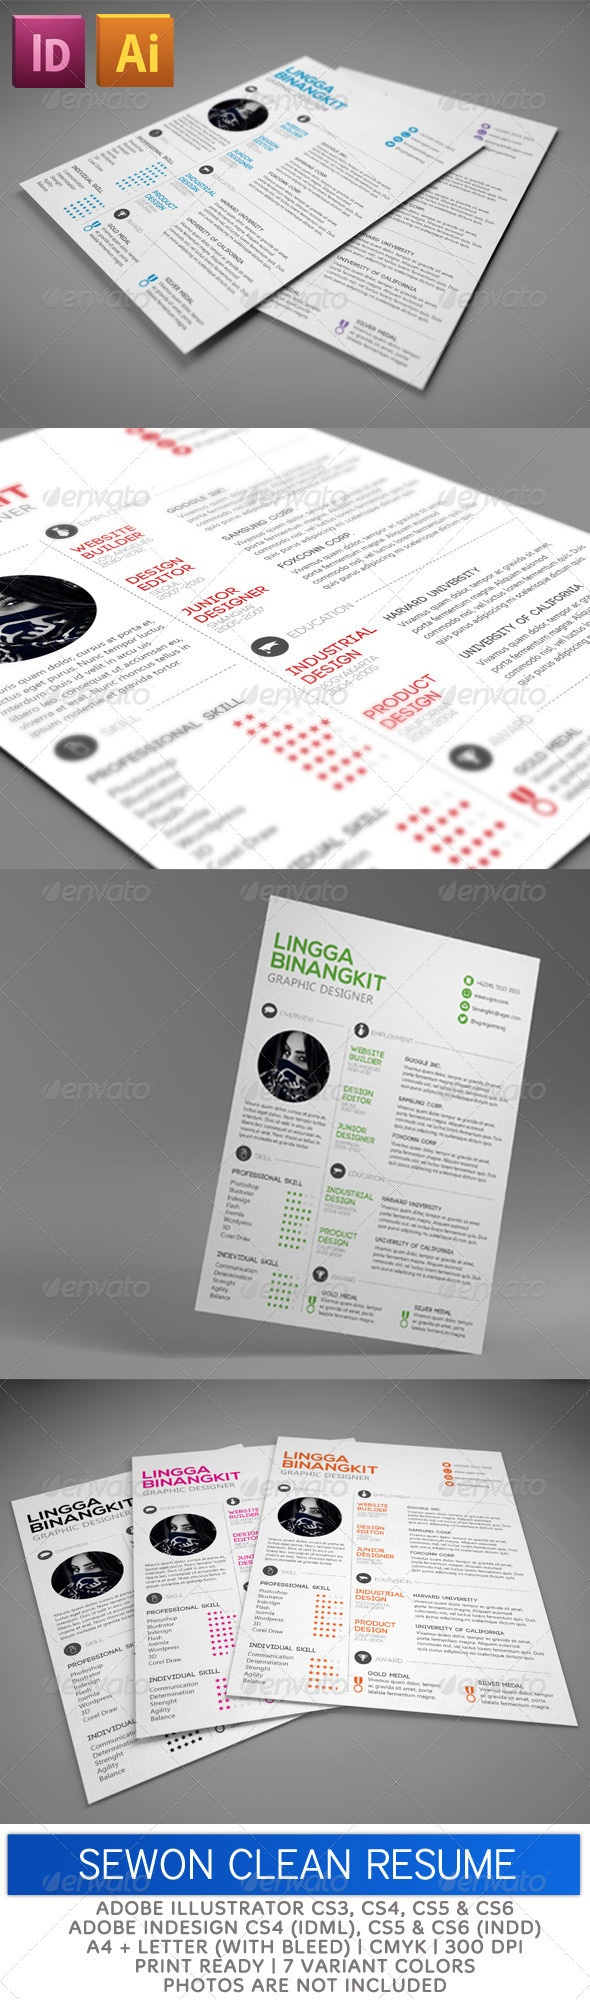 Sewon Clean Resume Template for InDesign